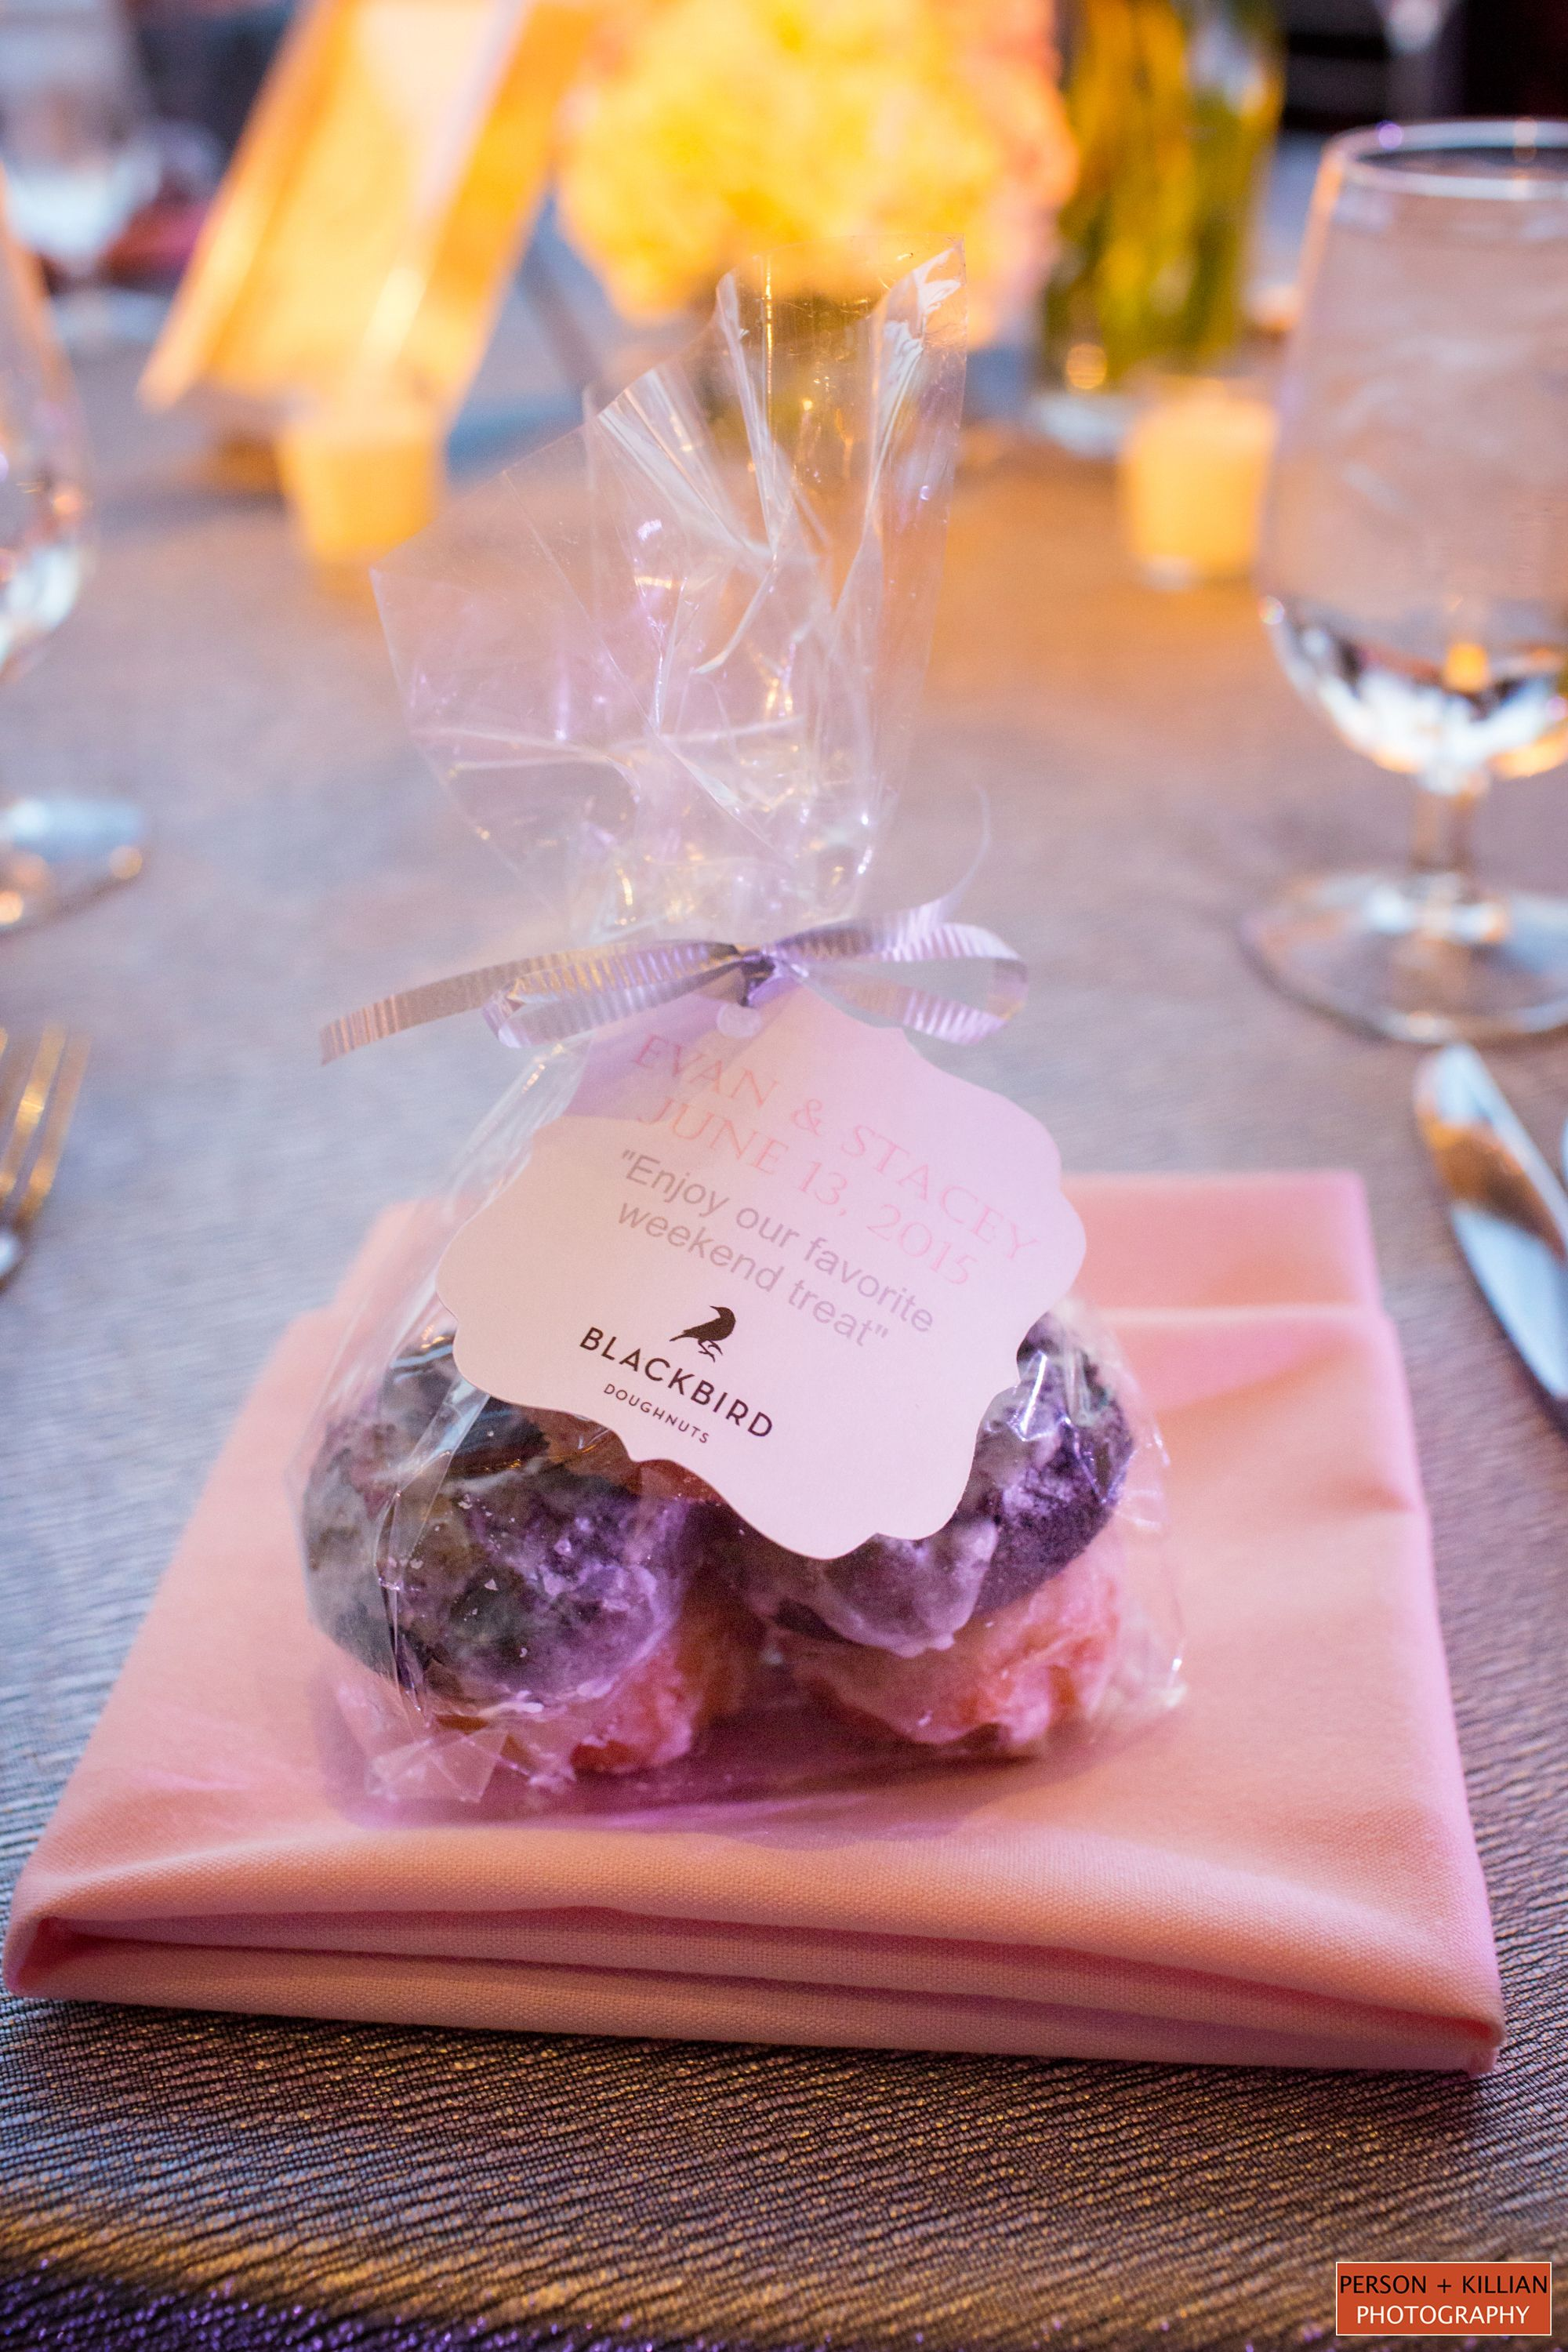 Berühmt Boston Wedding Favors Bilder - Brautkleider Ideen ...